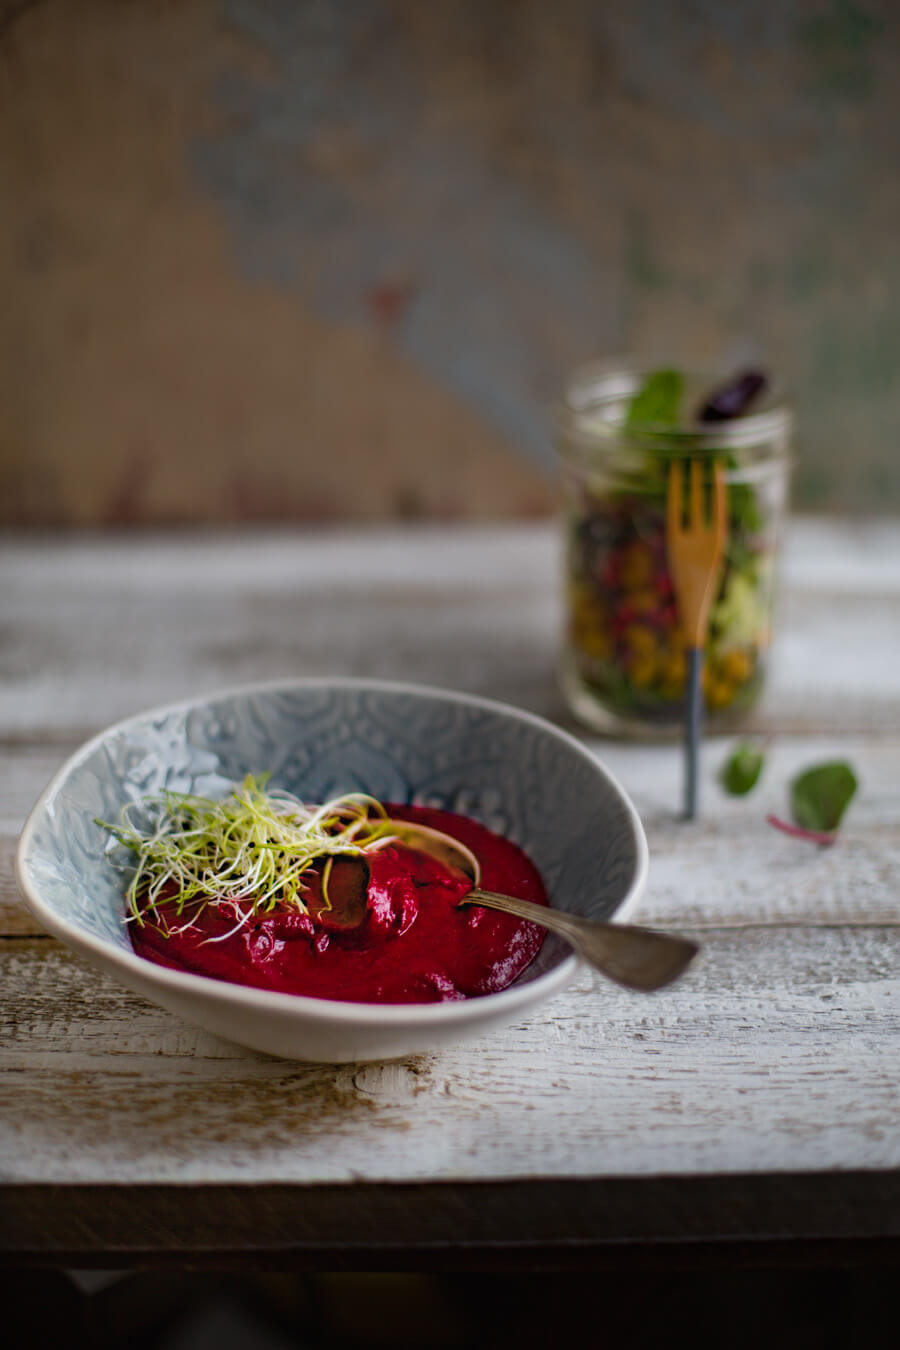 beetrootsoup with salad